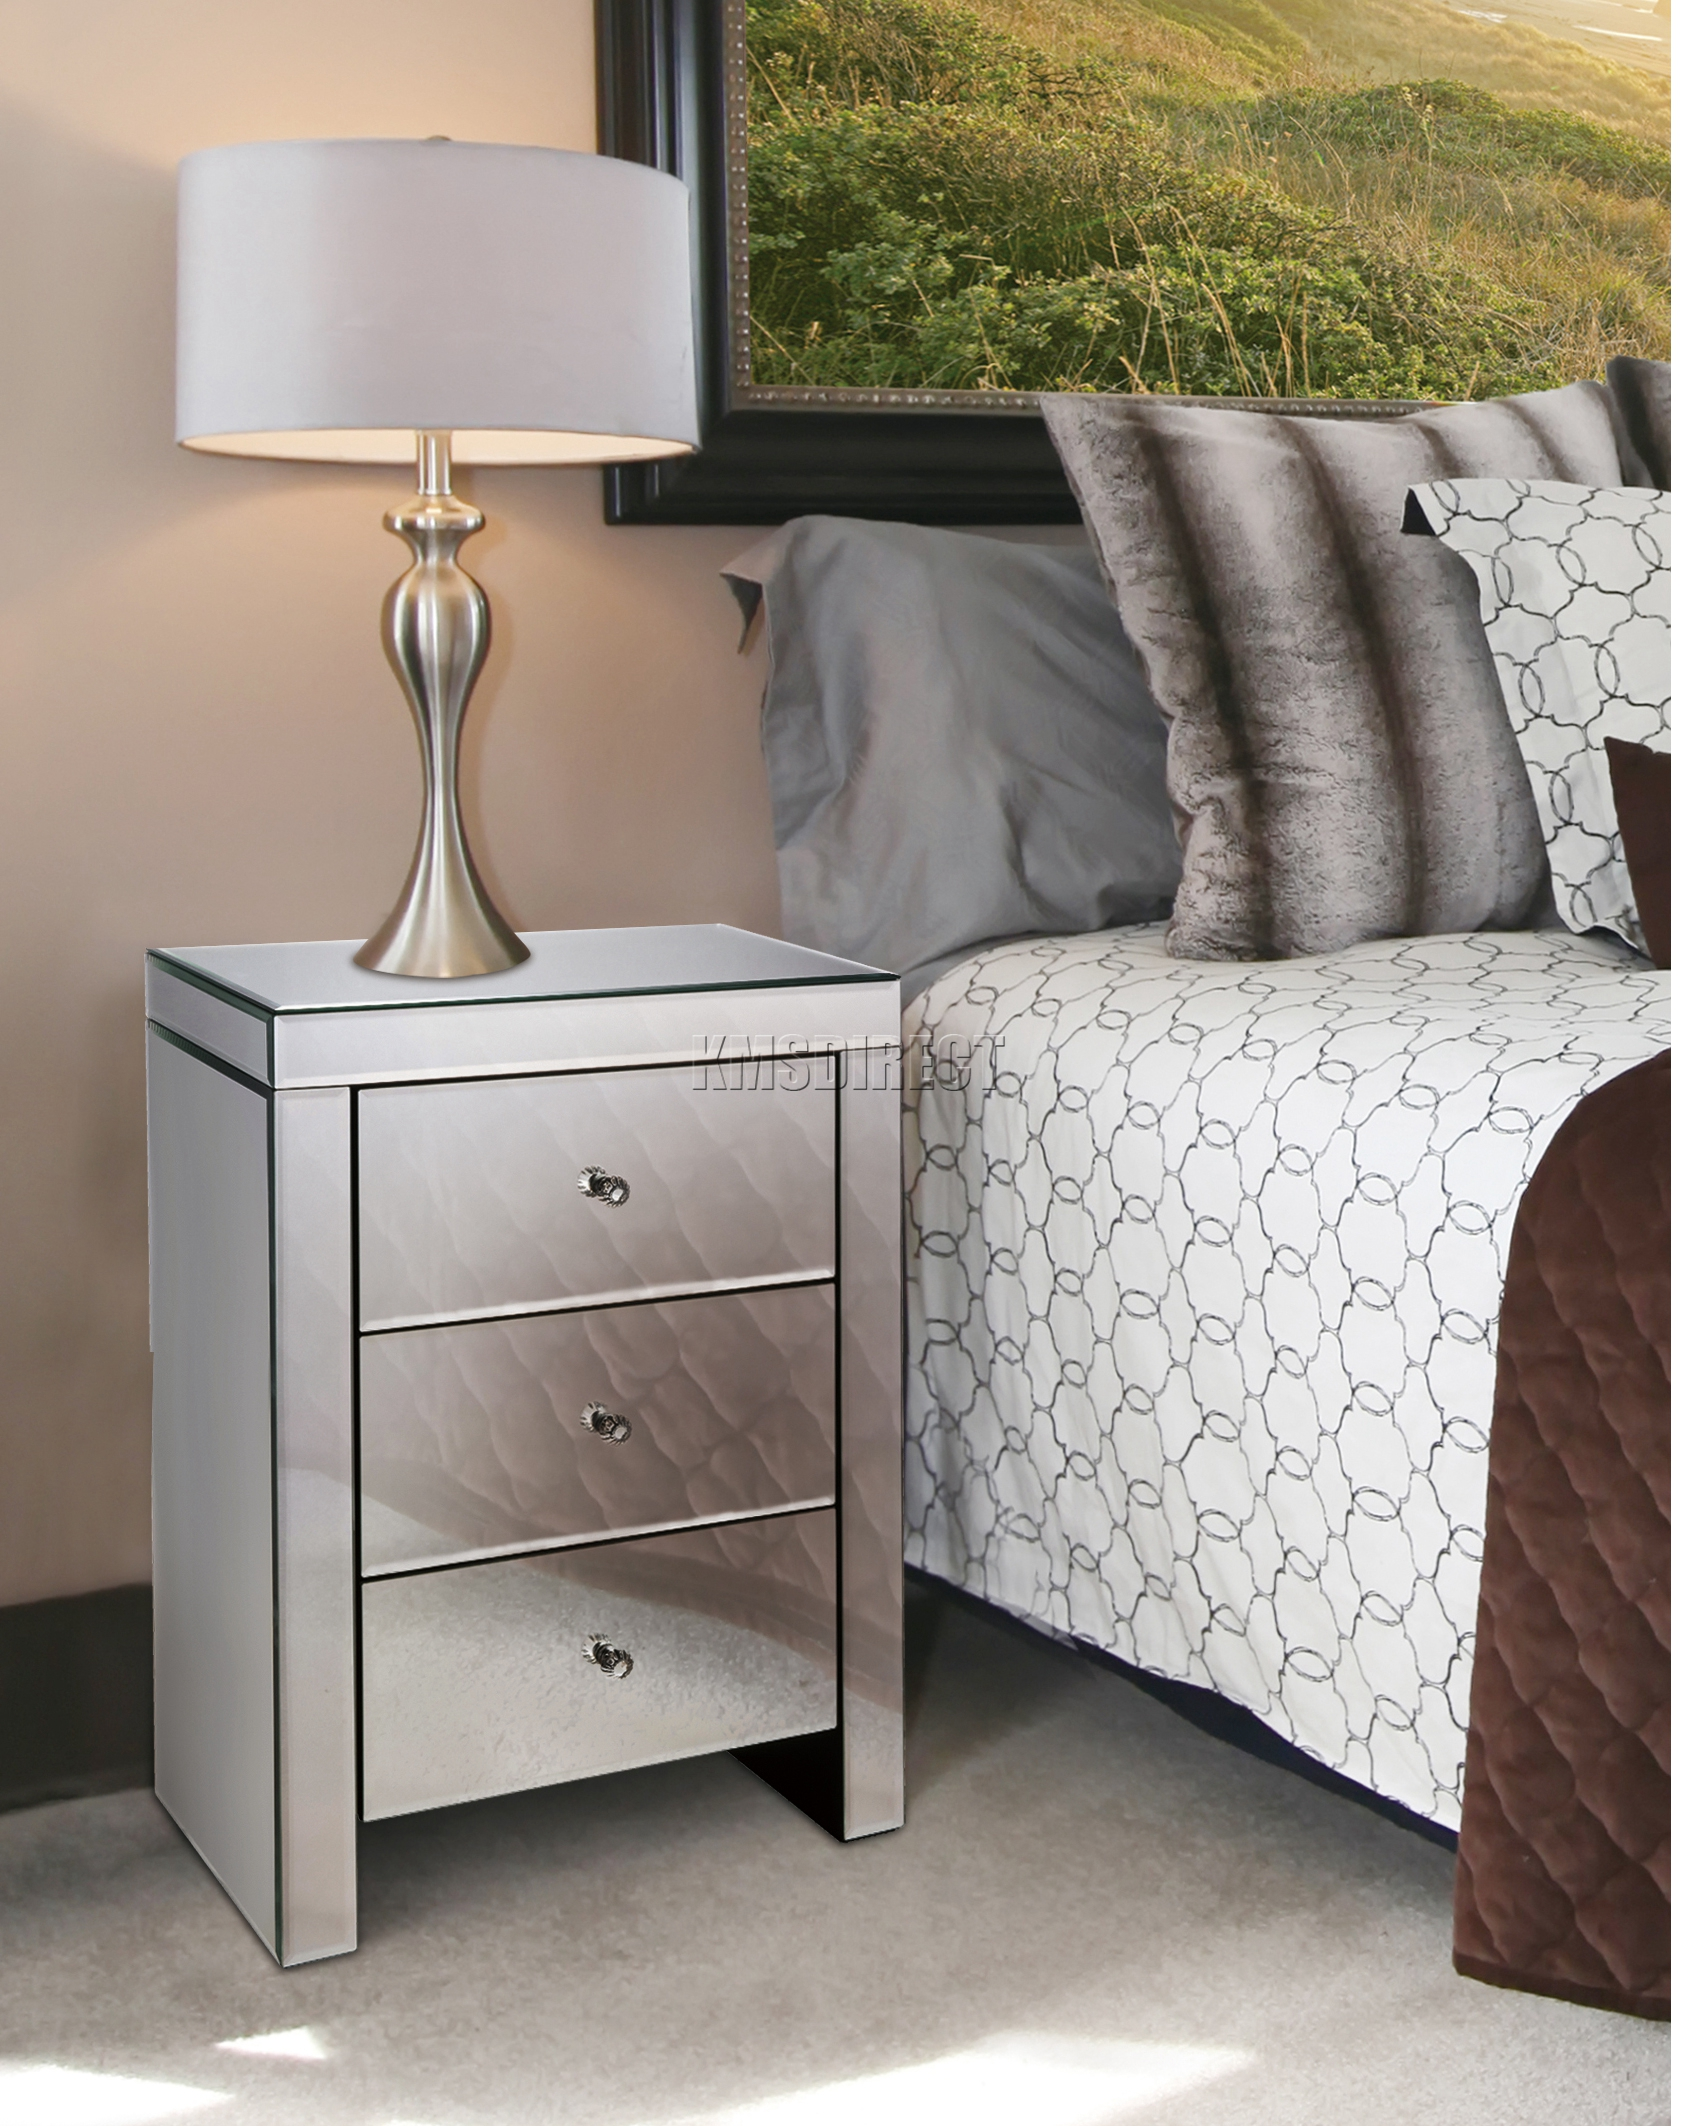 Sentinel Westwood Mirrored Furniture Gl Bedside Cabinet Table With Drawer Bedroom New